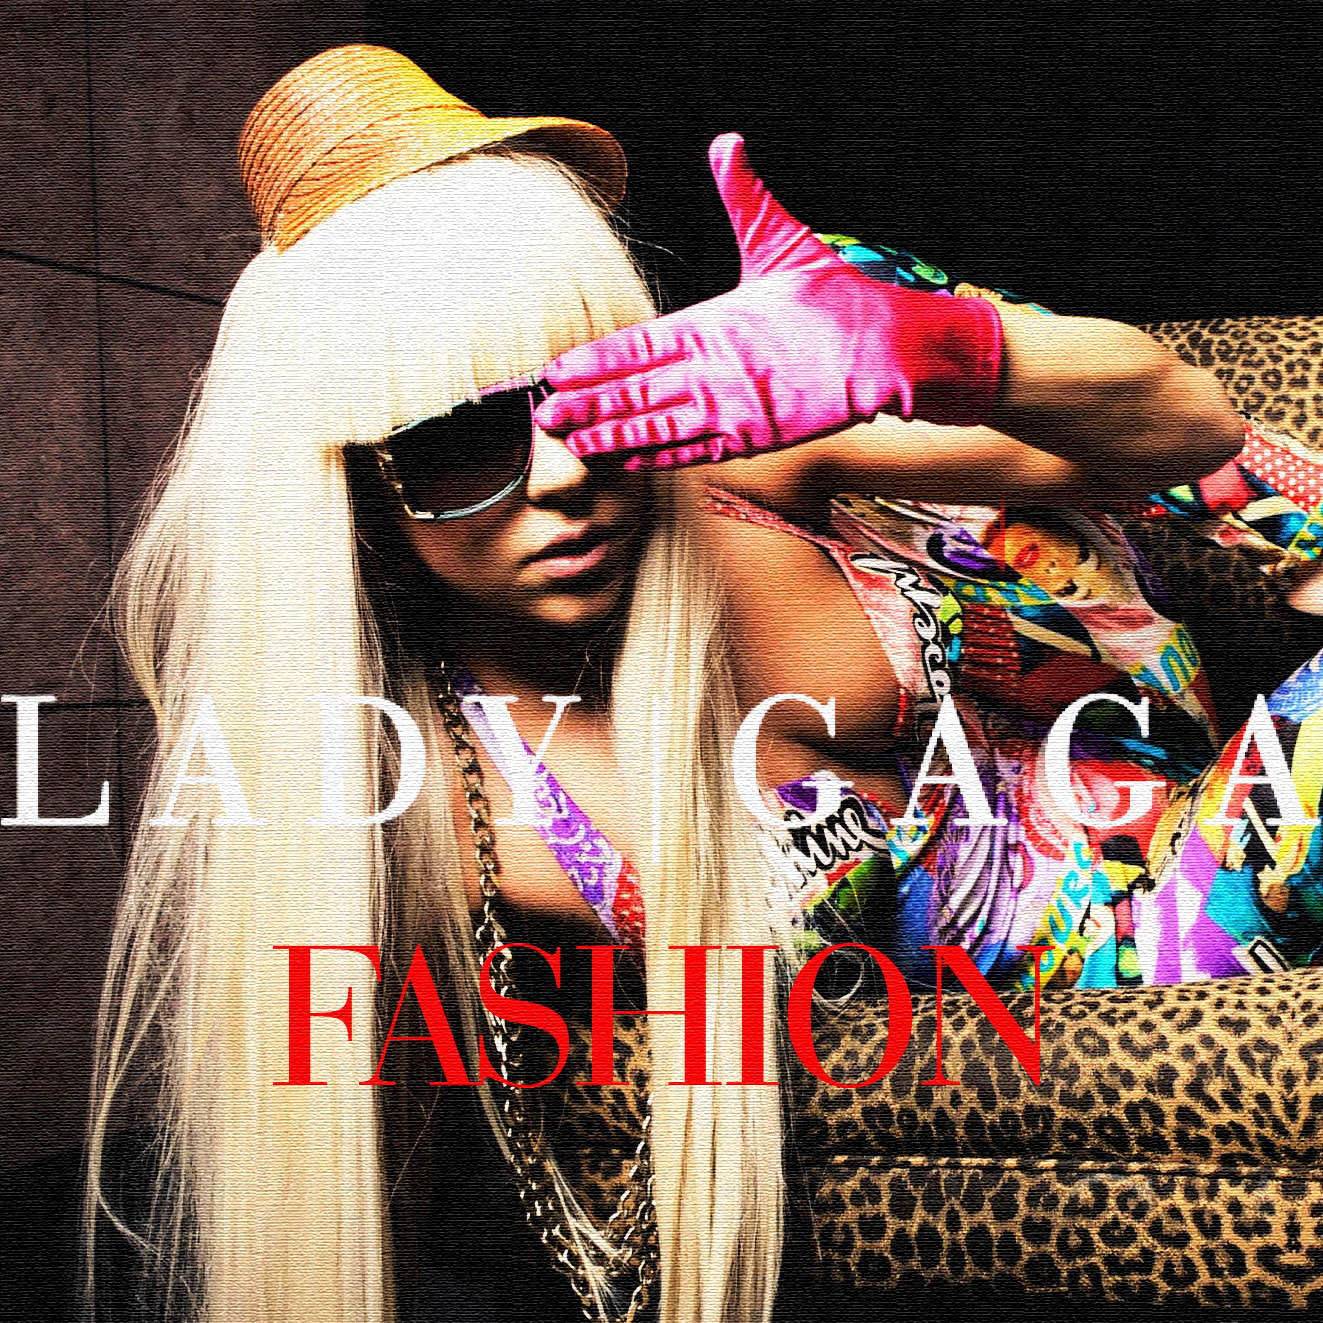 http://fc05.deviantart.net/fs49/f/2009/167/f/a/Lady_Gaga_Fashion_Single_Cover_by_djroxx13.jpg